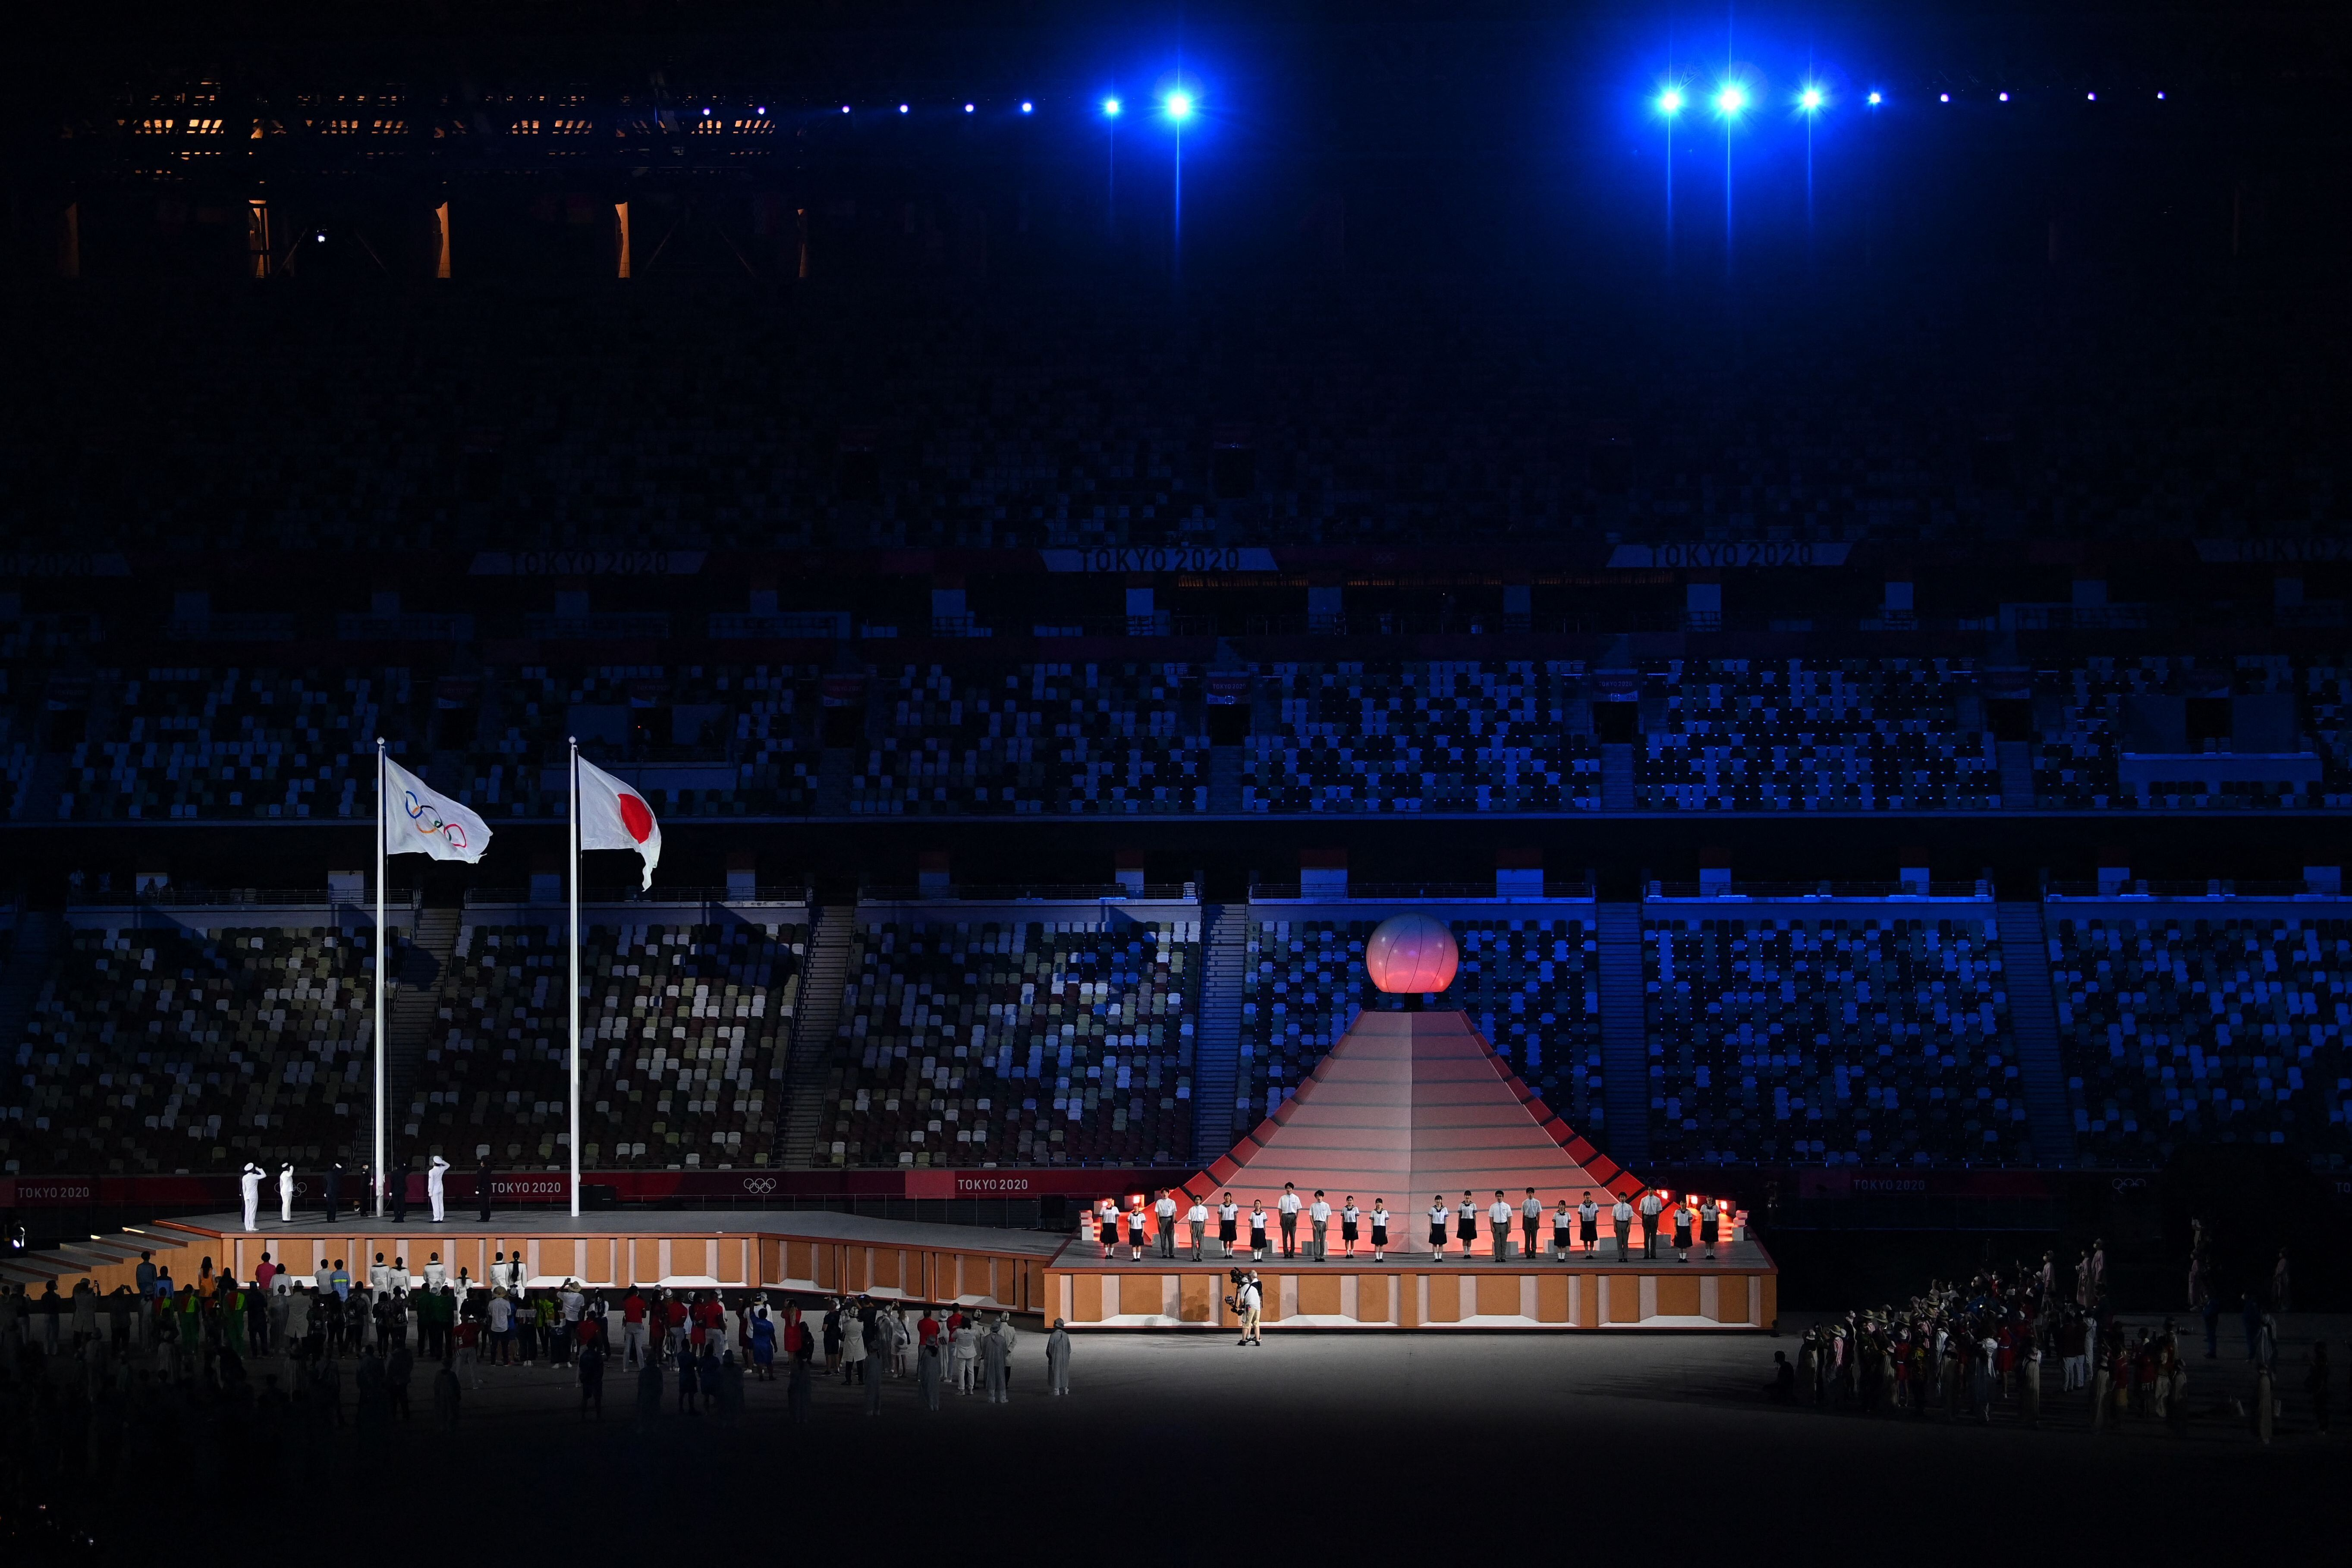 The Olympic and Japanese flags sway in the wind.